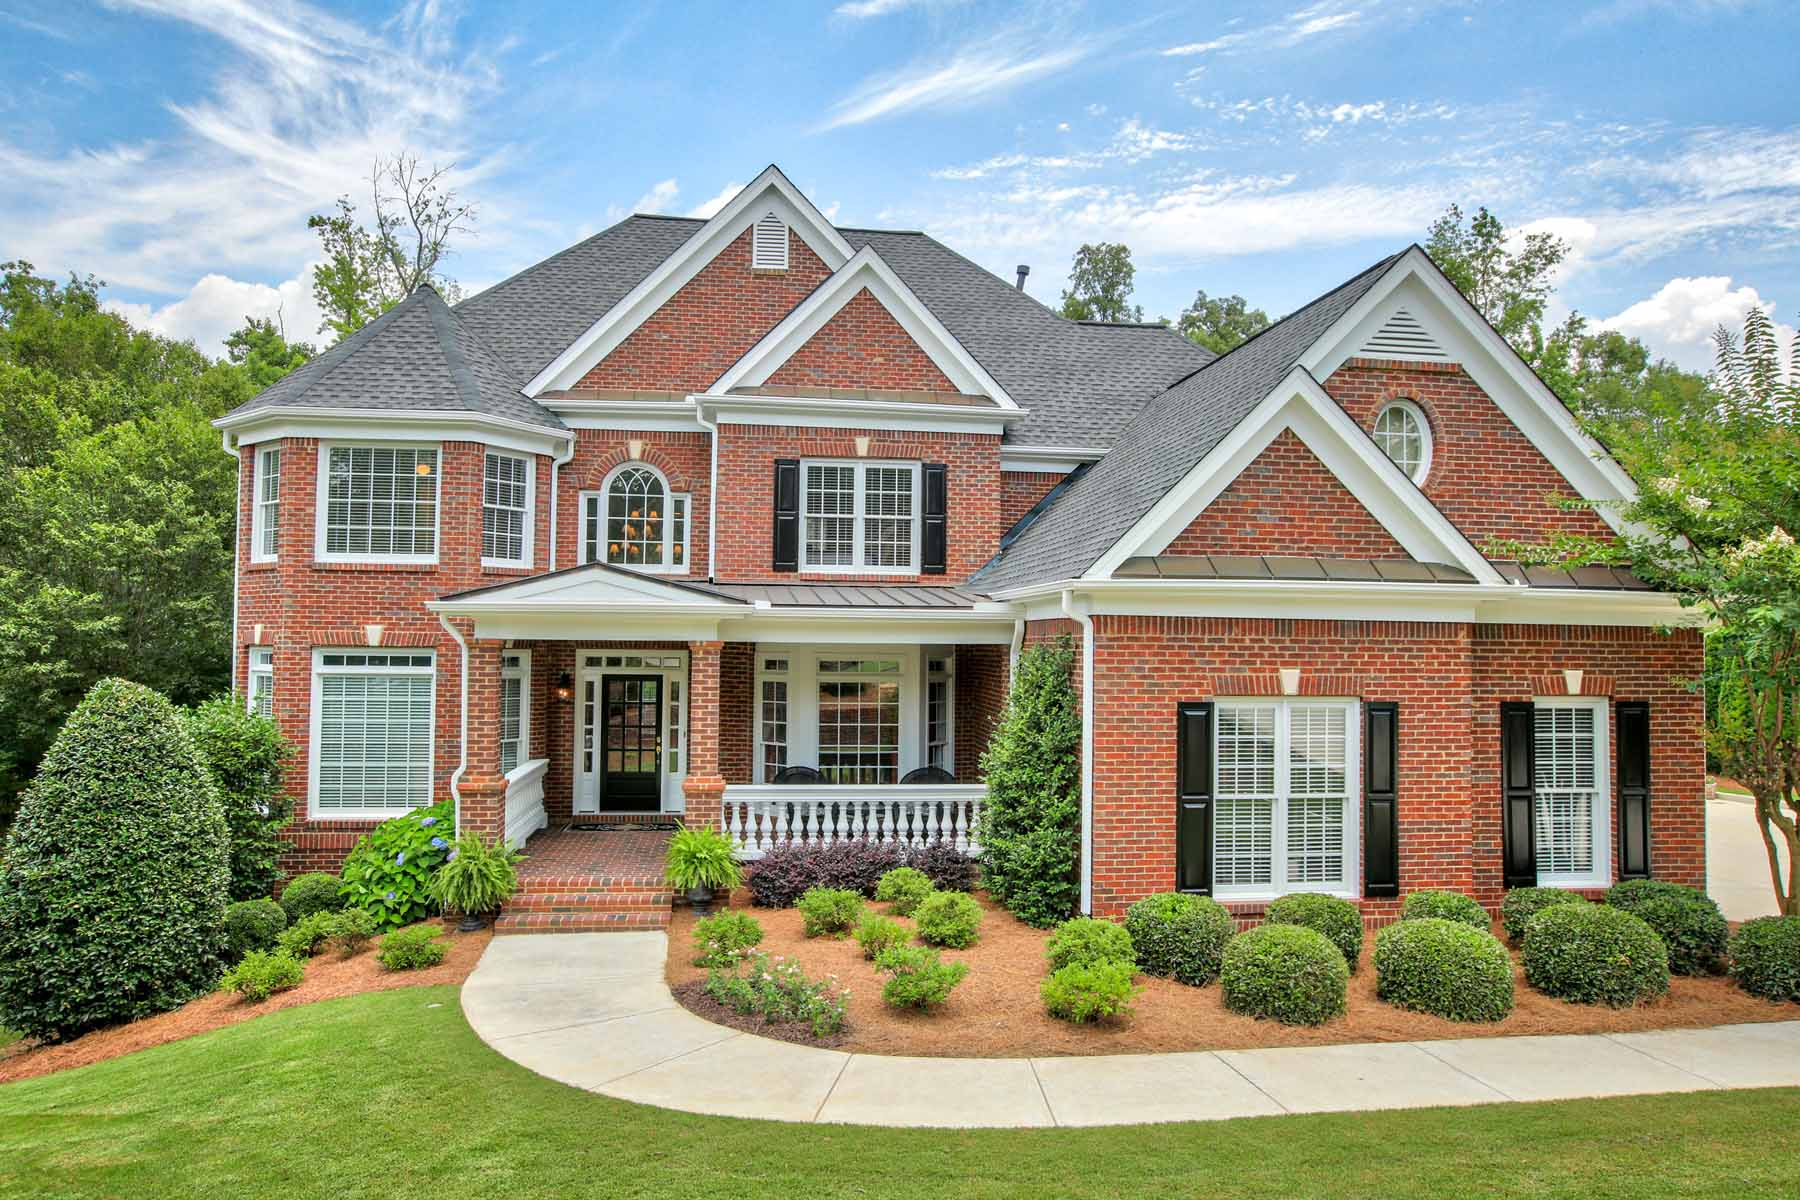 Single Family Home for Sale at Spectacular Home, Perfect for Entertaining 8550 Royal Troon Drive Duluth, Georgia, 30097 United States